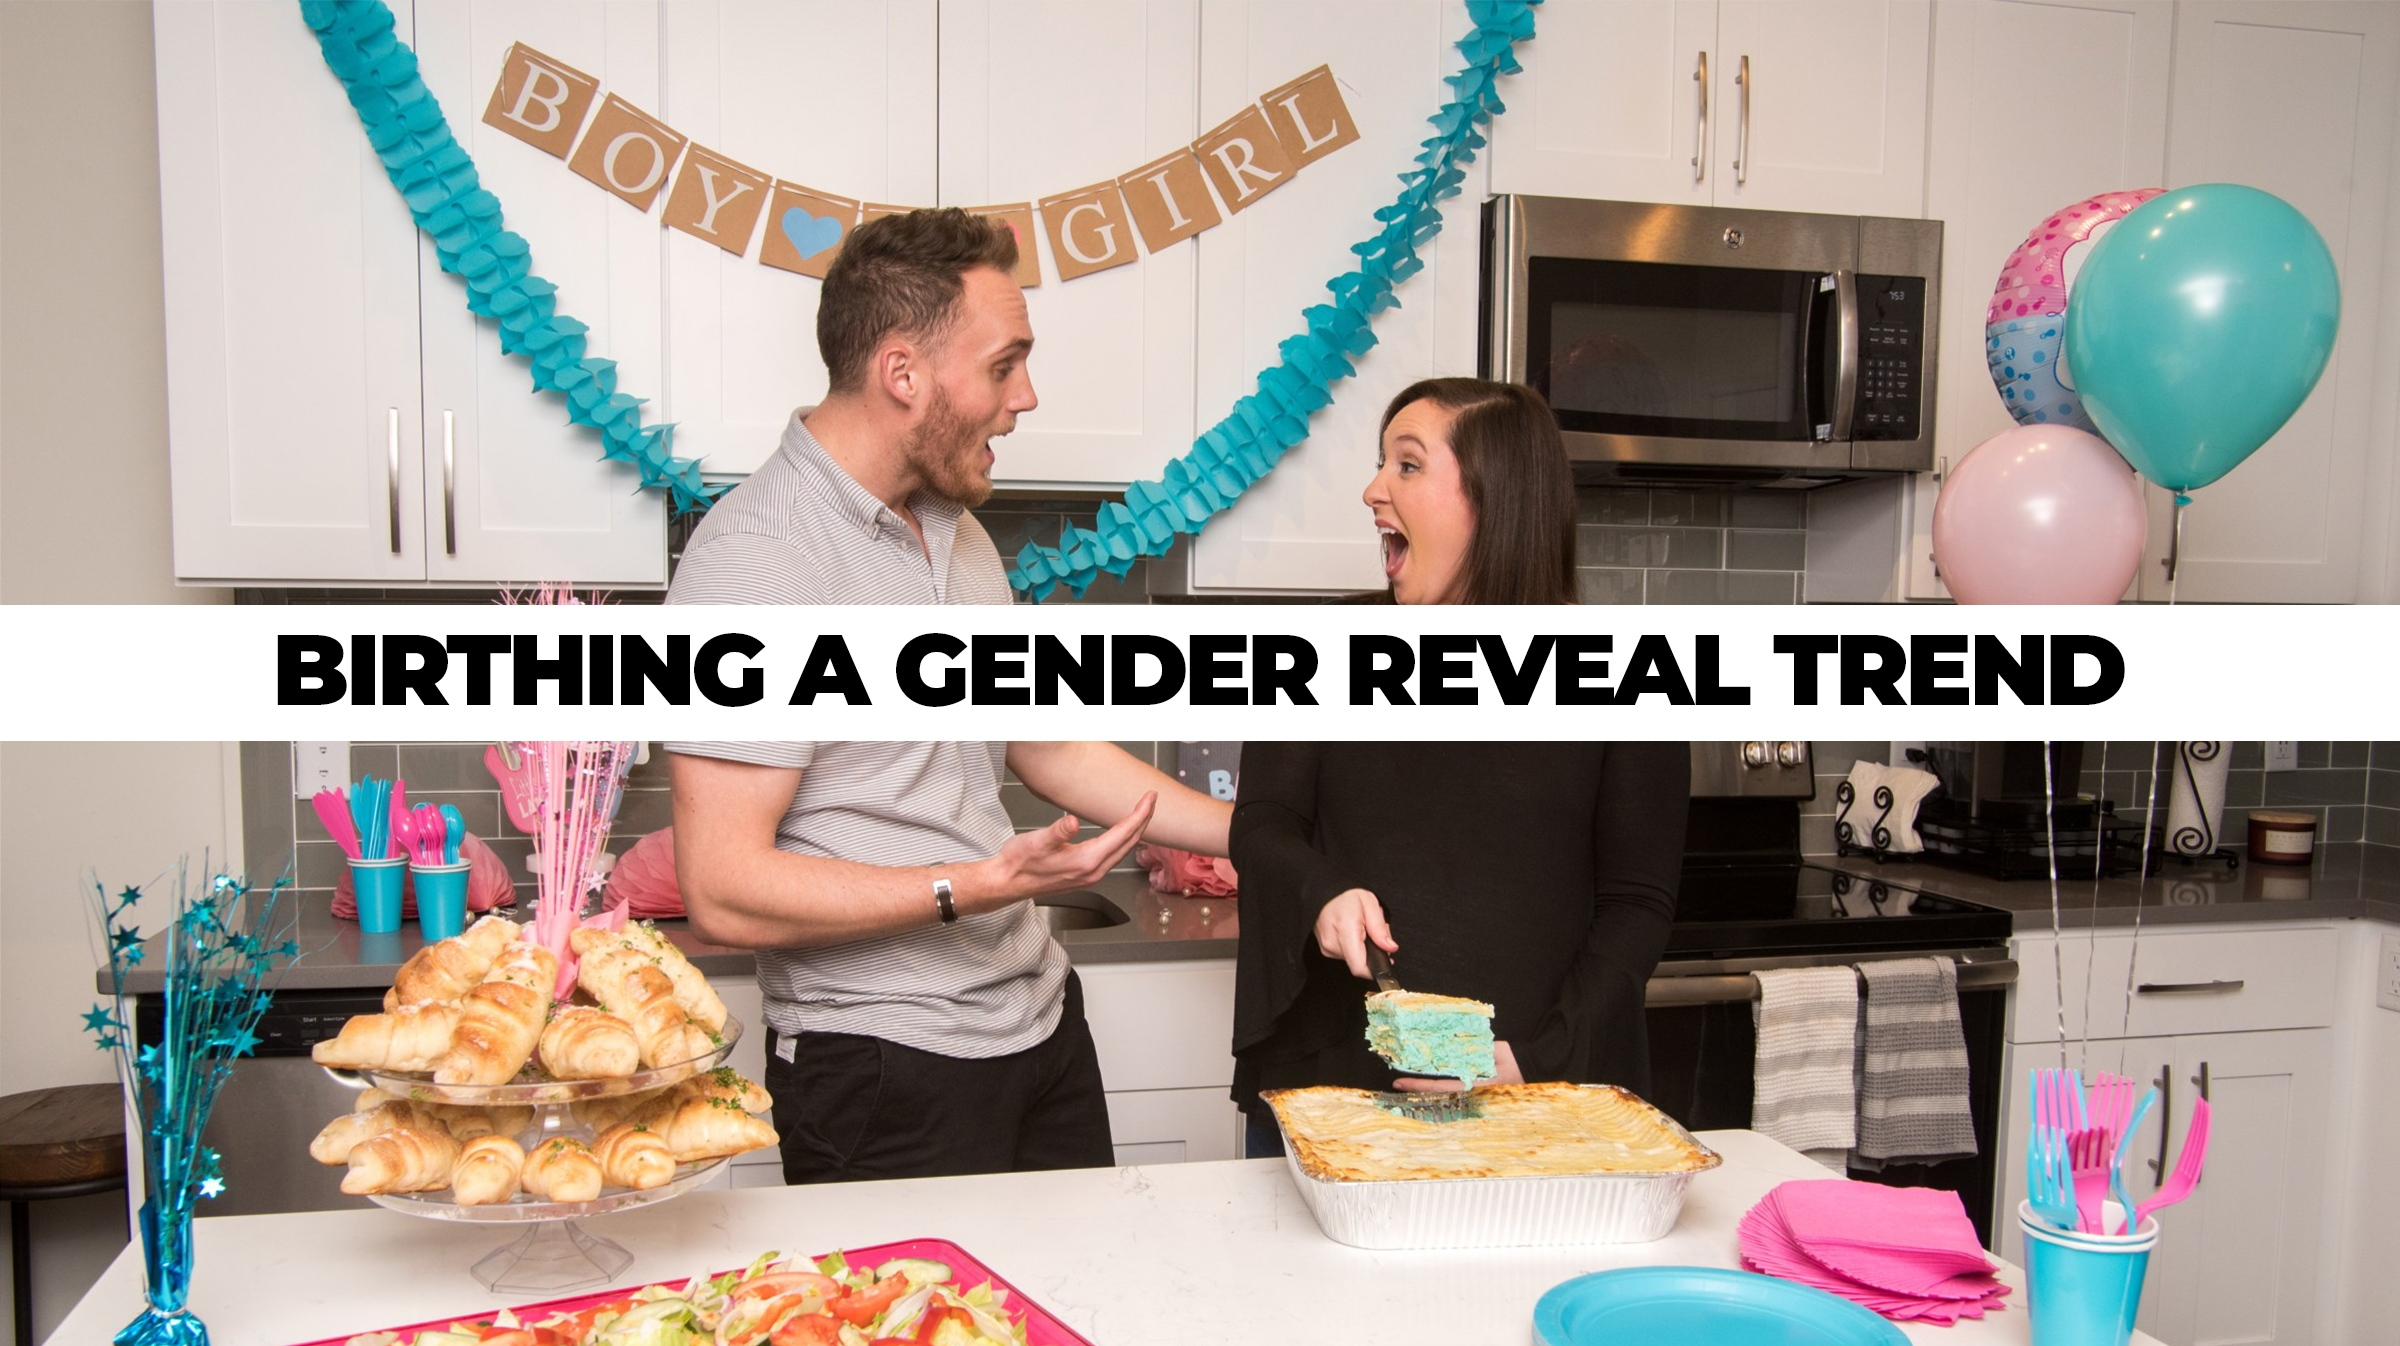 Villa Italian Kitchen's Gender Reveal Lasagna: Product Launch